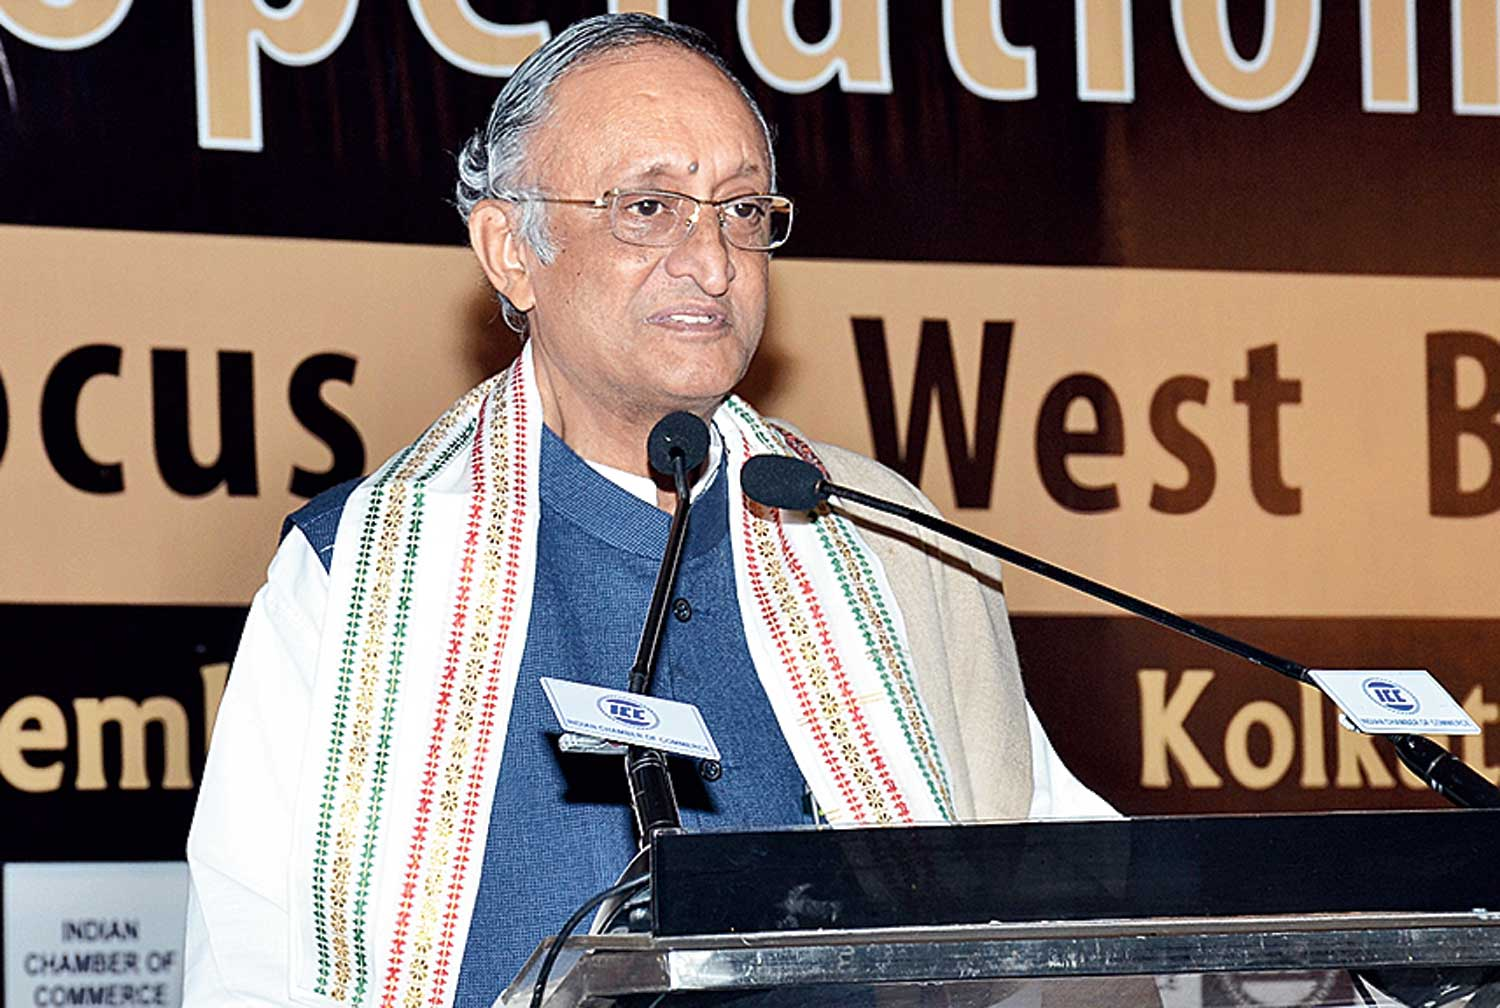 The GST Council accepted Amit Mitra's (in picture) 1% tax proposal but did not buy into his suggestion for a three-tier tax structure: 1% tax for flats priced up to Rs 40 lakh, 5% between Rs 40 lakh and Rs 1 crore and 7% over Rs 1 crore.